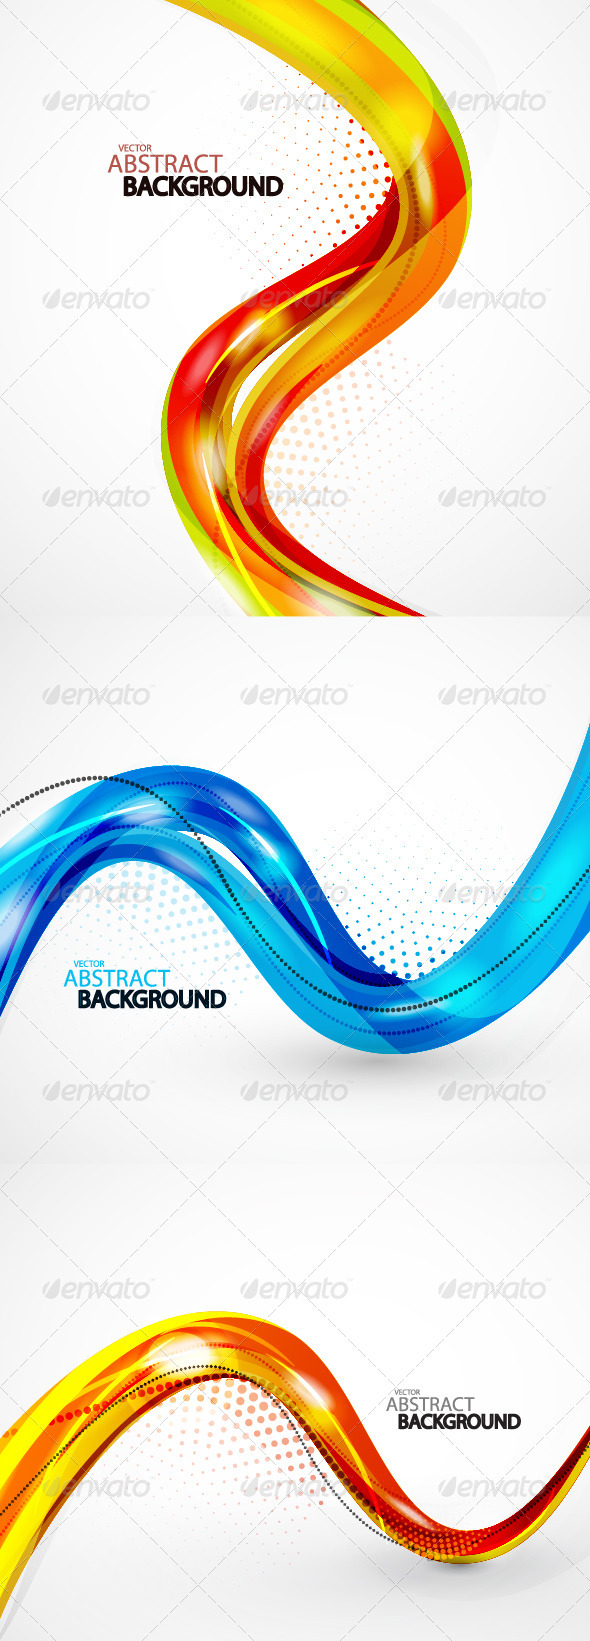 GraphicRiver Pack of abstract backgrounds 930220